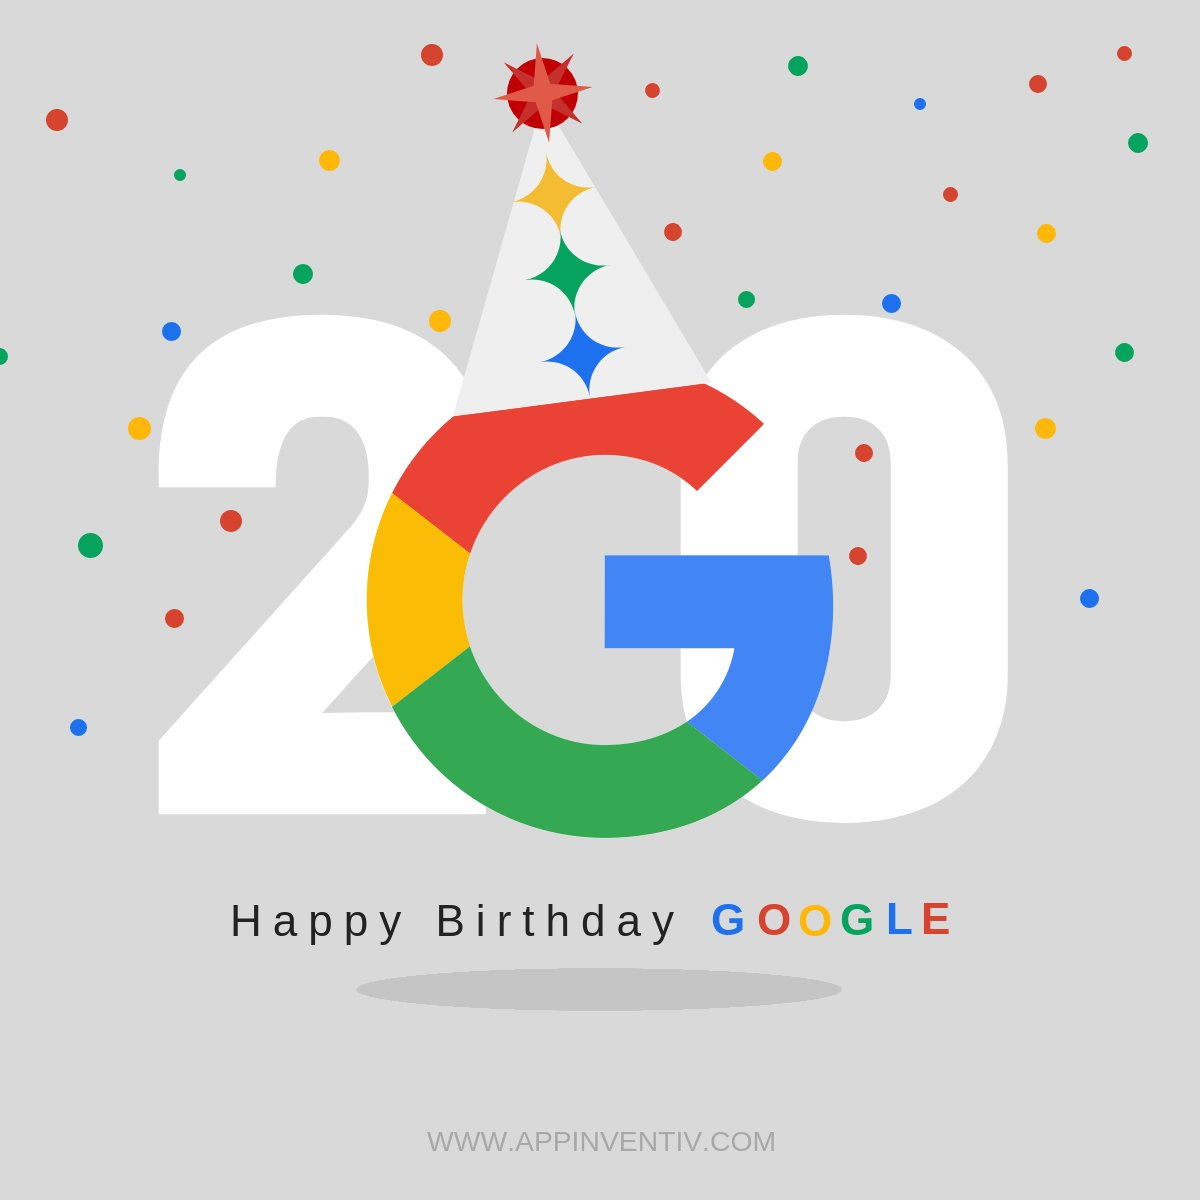 Appinventiv On Twitter Google Turns 20 Today Thank You